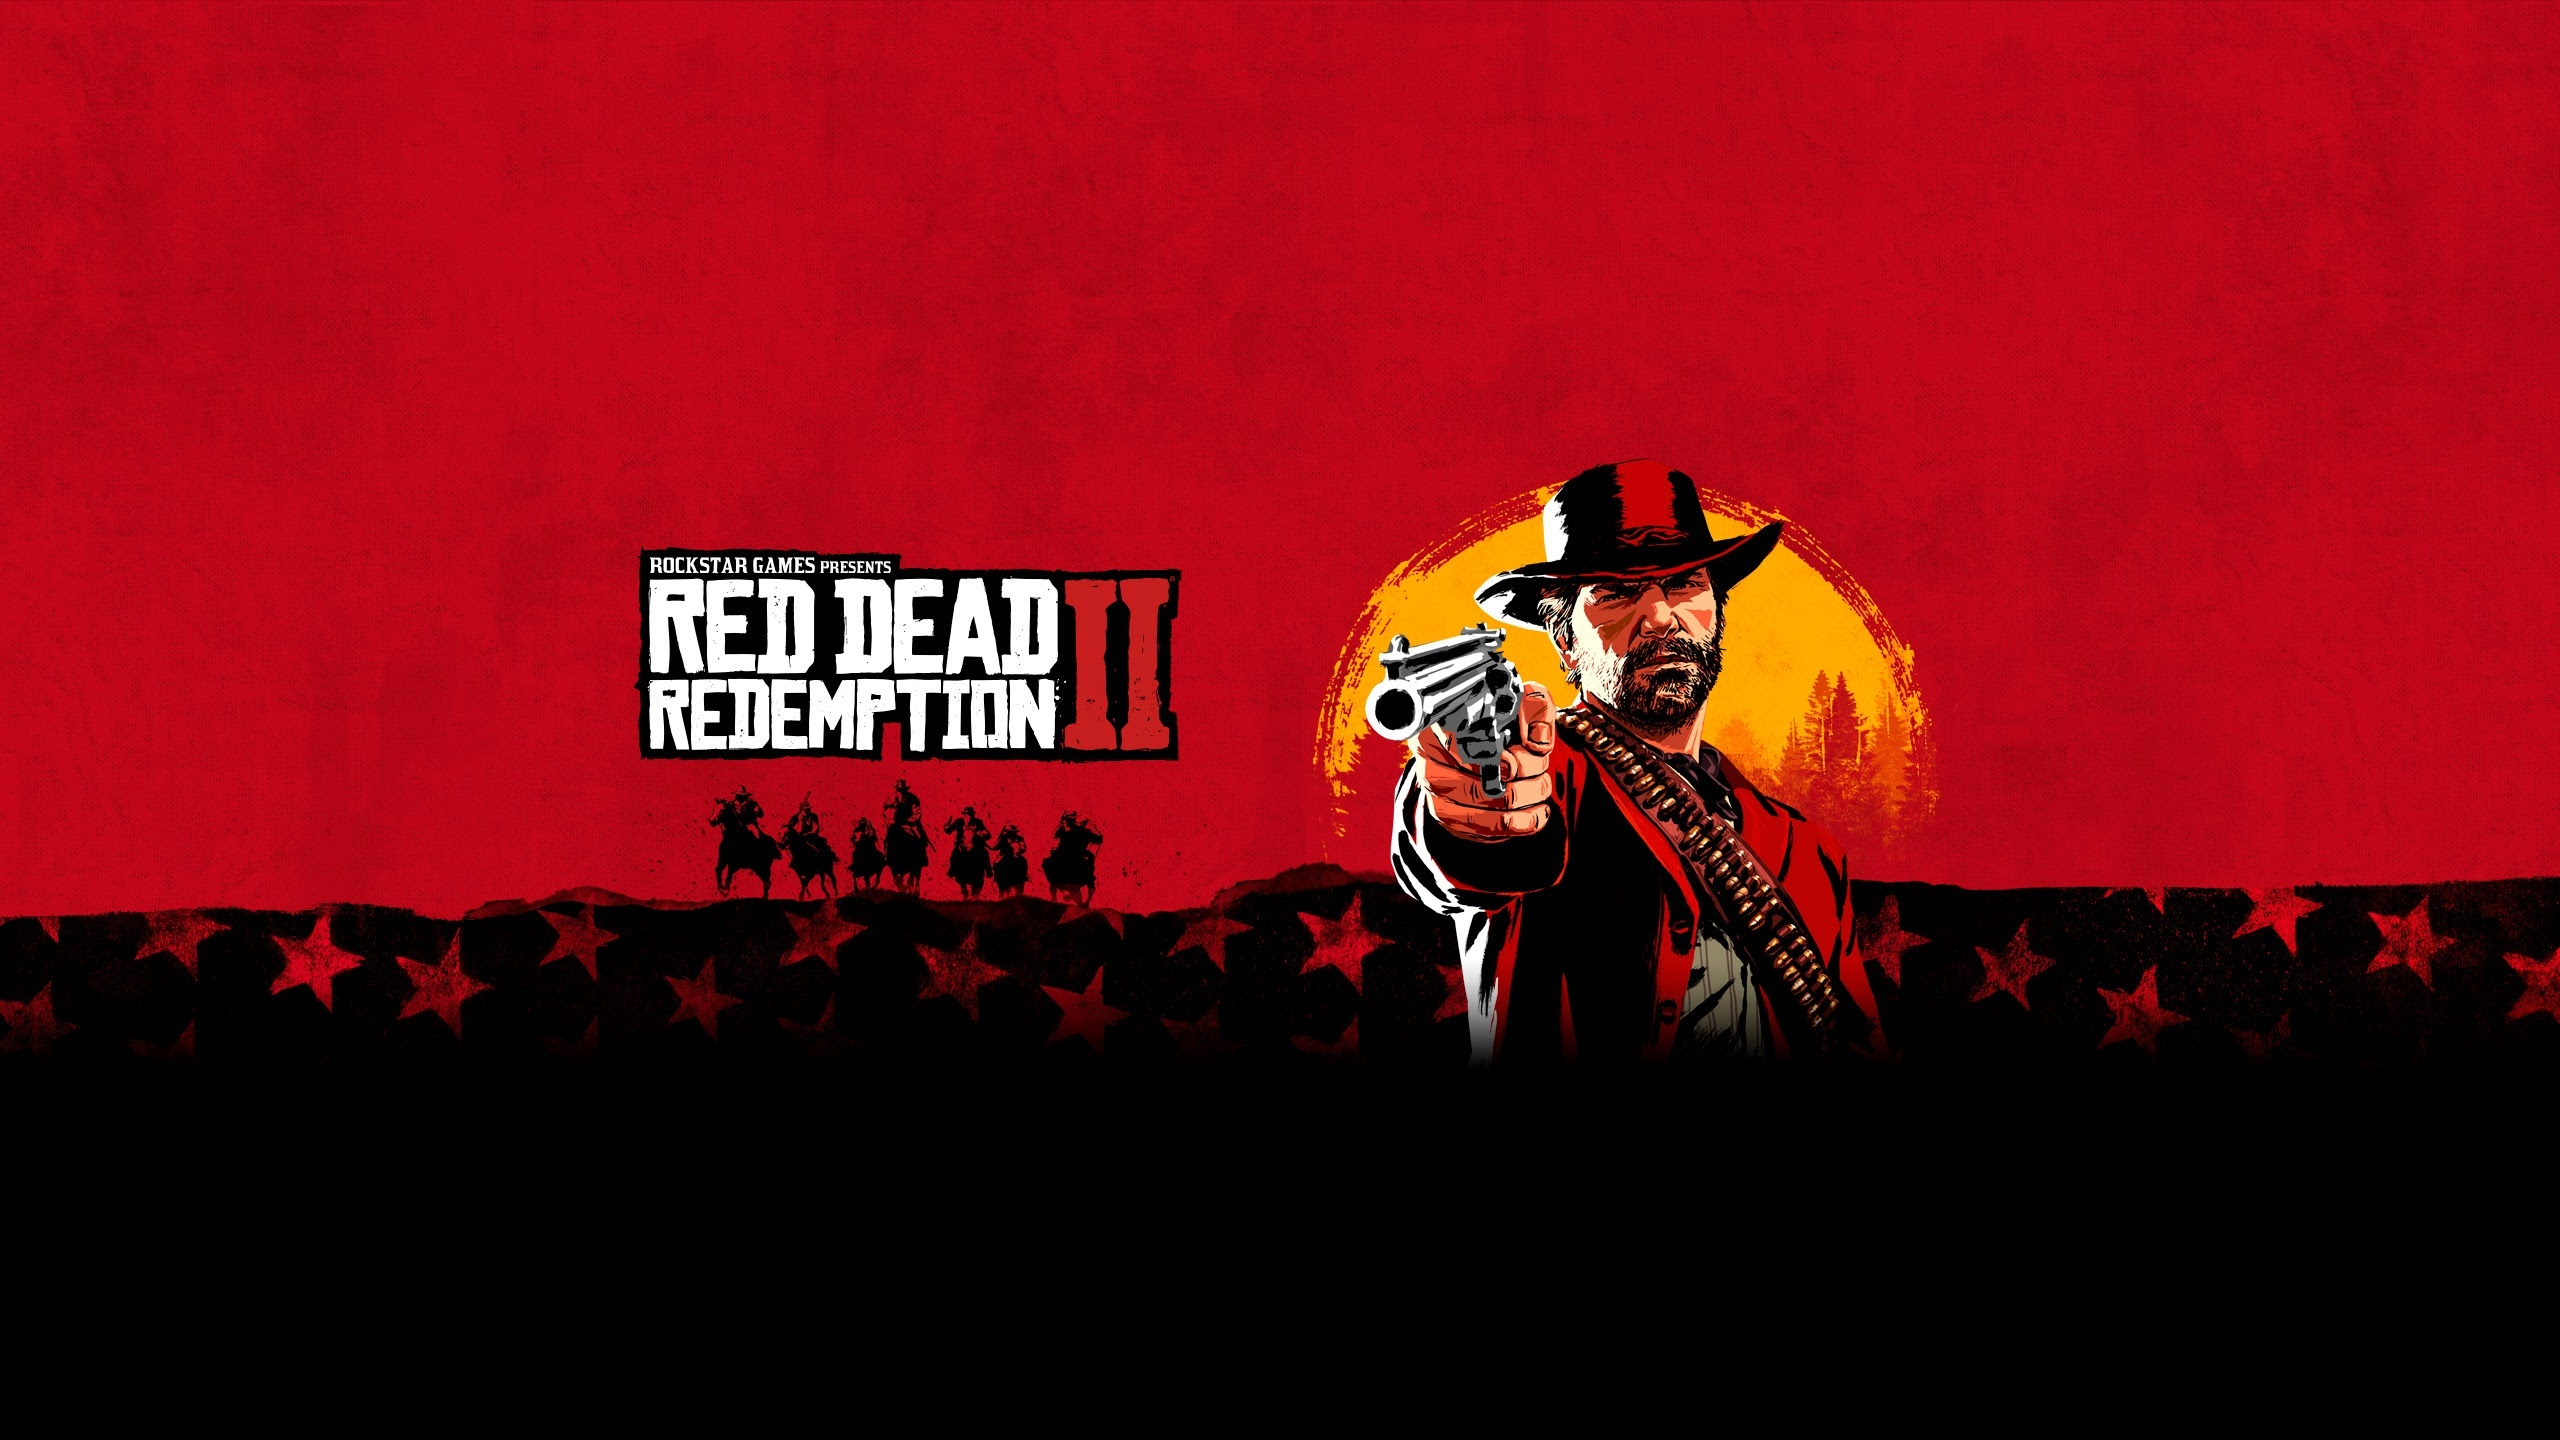 Red Dead Redemption 2 Hd Games 4k Wallpapers Images